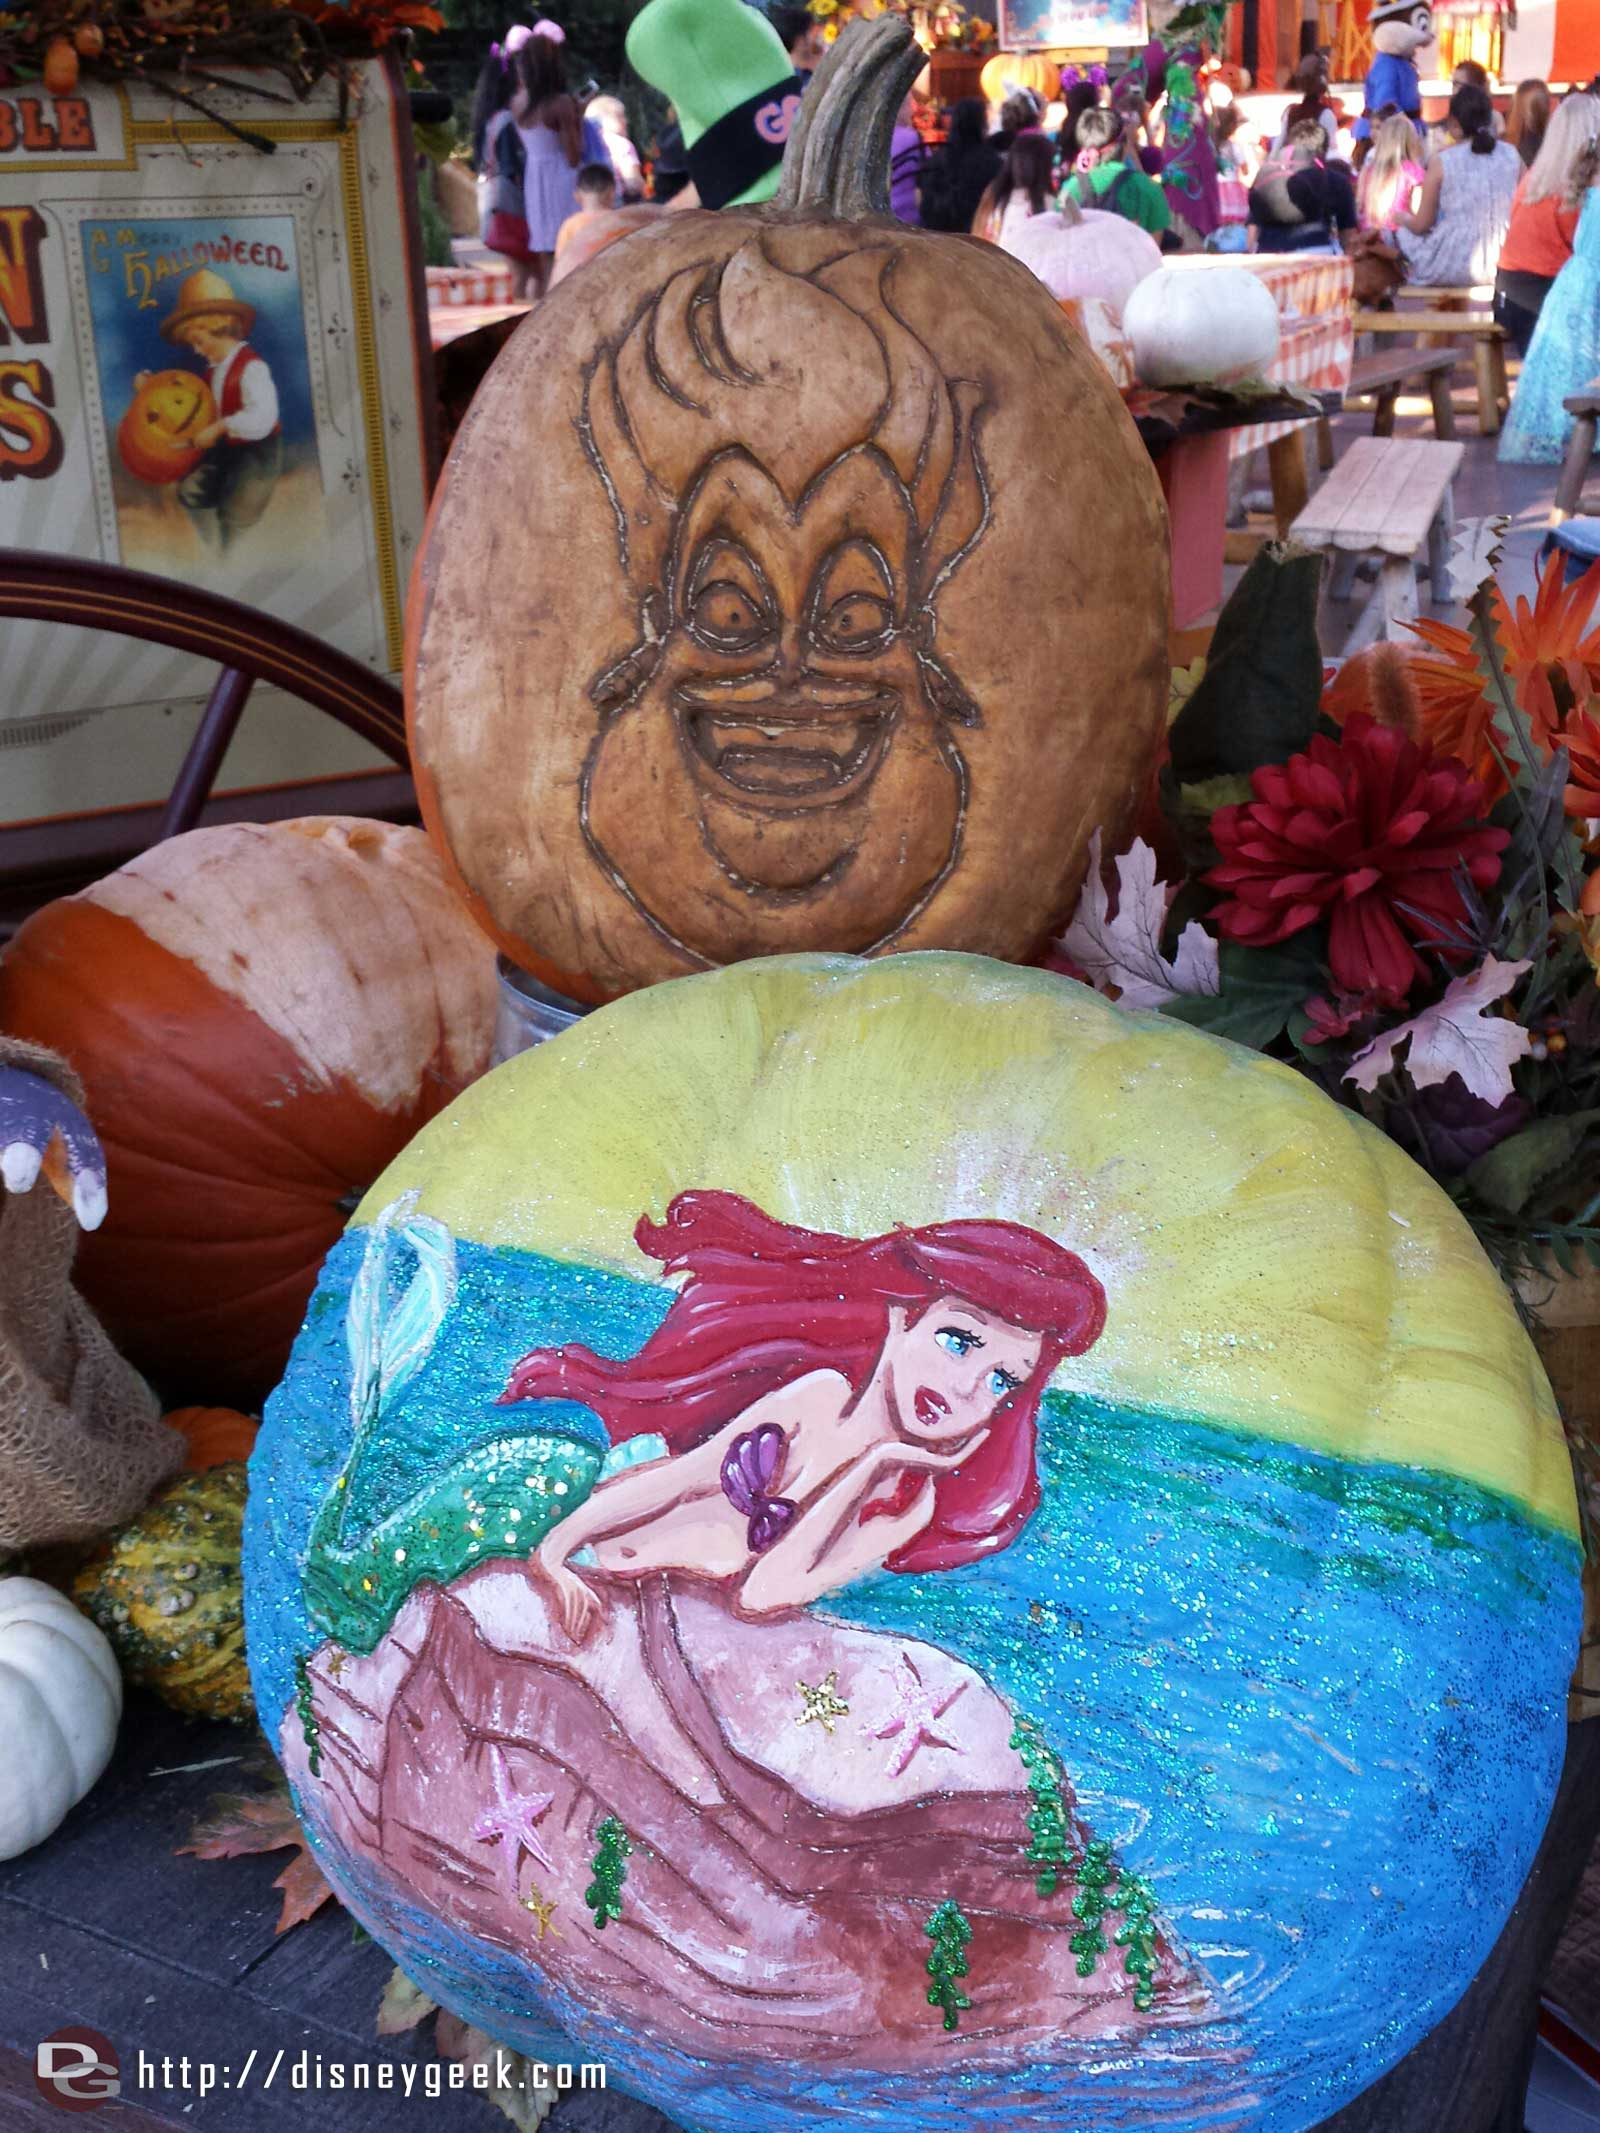 Ursula & Ariel pumpkins at the Big Thunder Ranch Jamboree Halloween Carnival #Disneyland